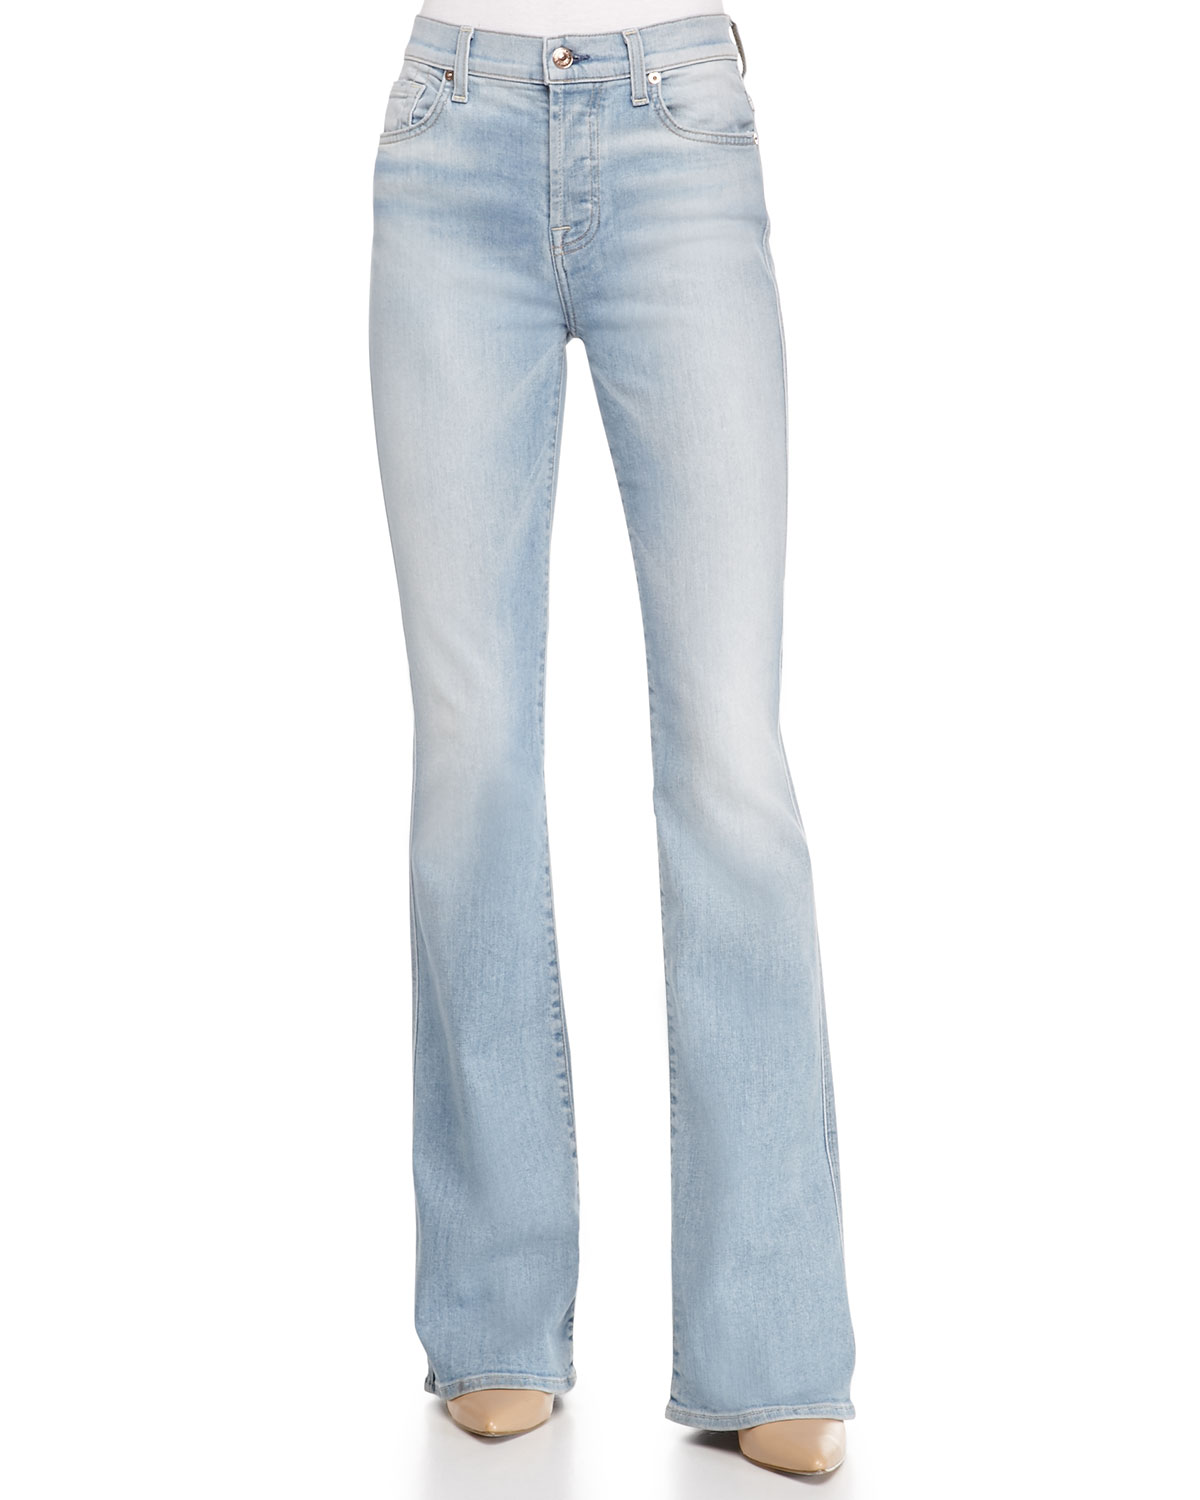 958291905d84 7 for all mankind High-Waist Vintage Bootcut Jeans